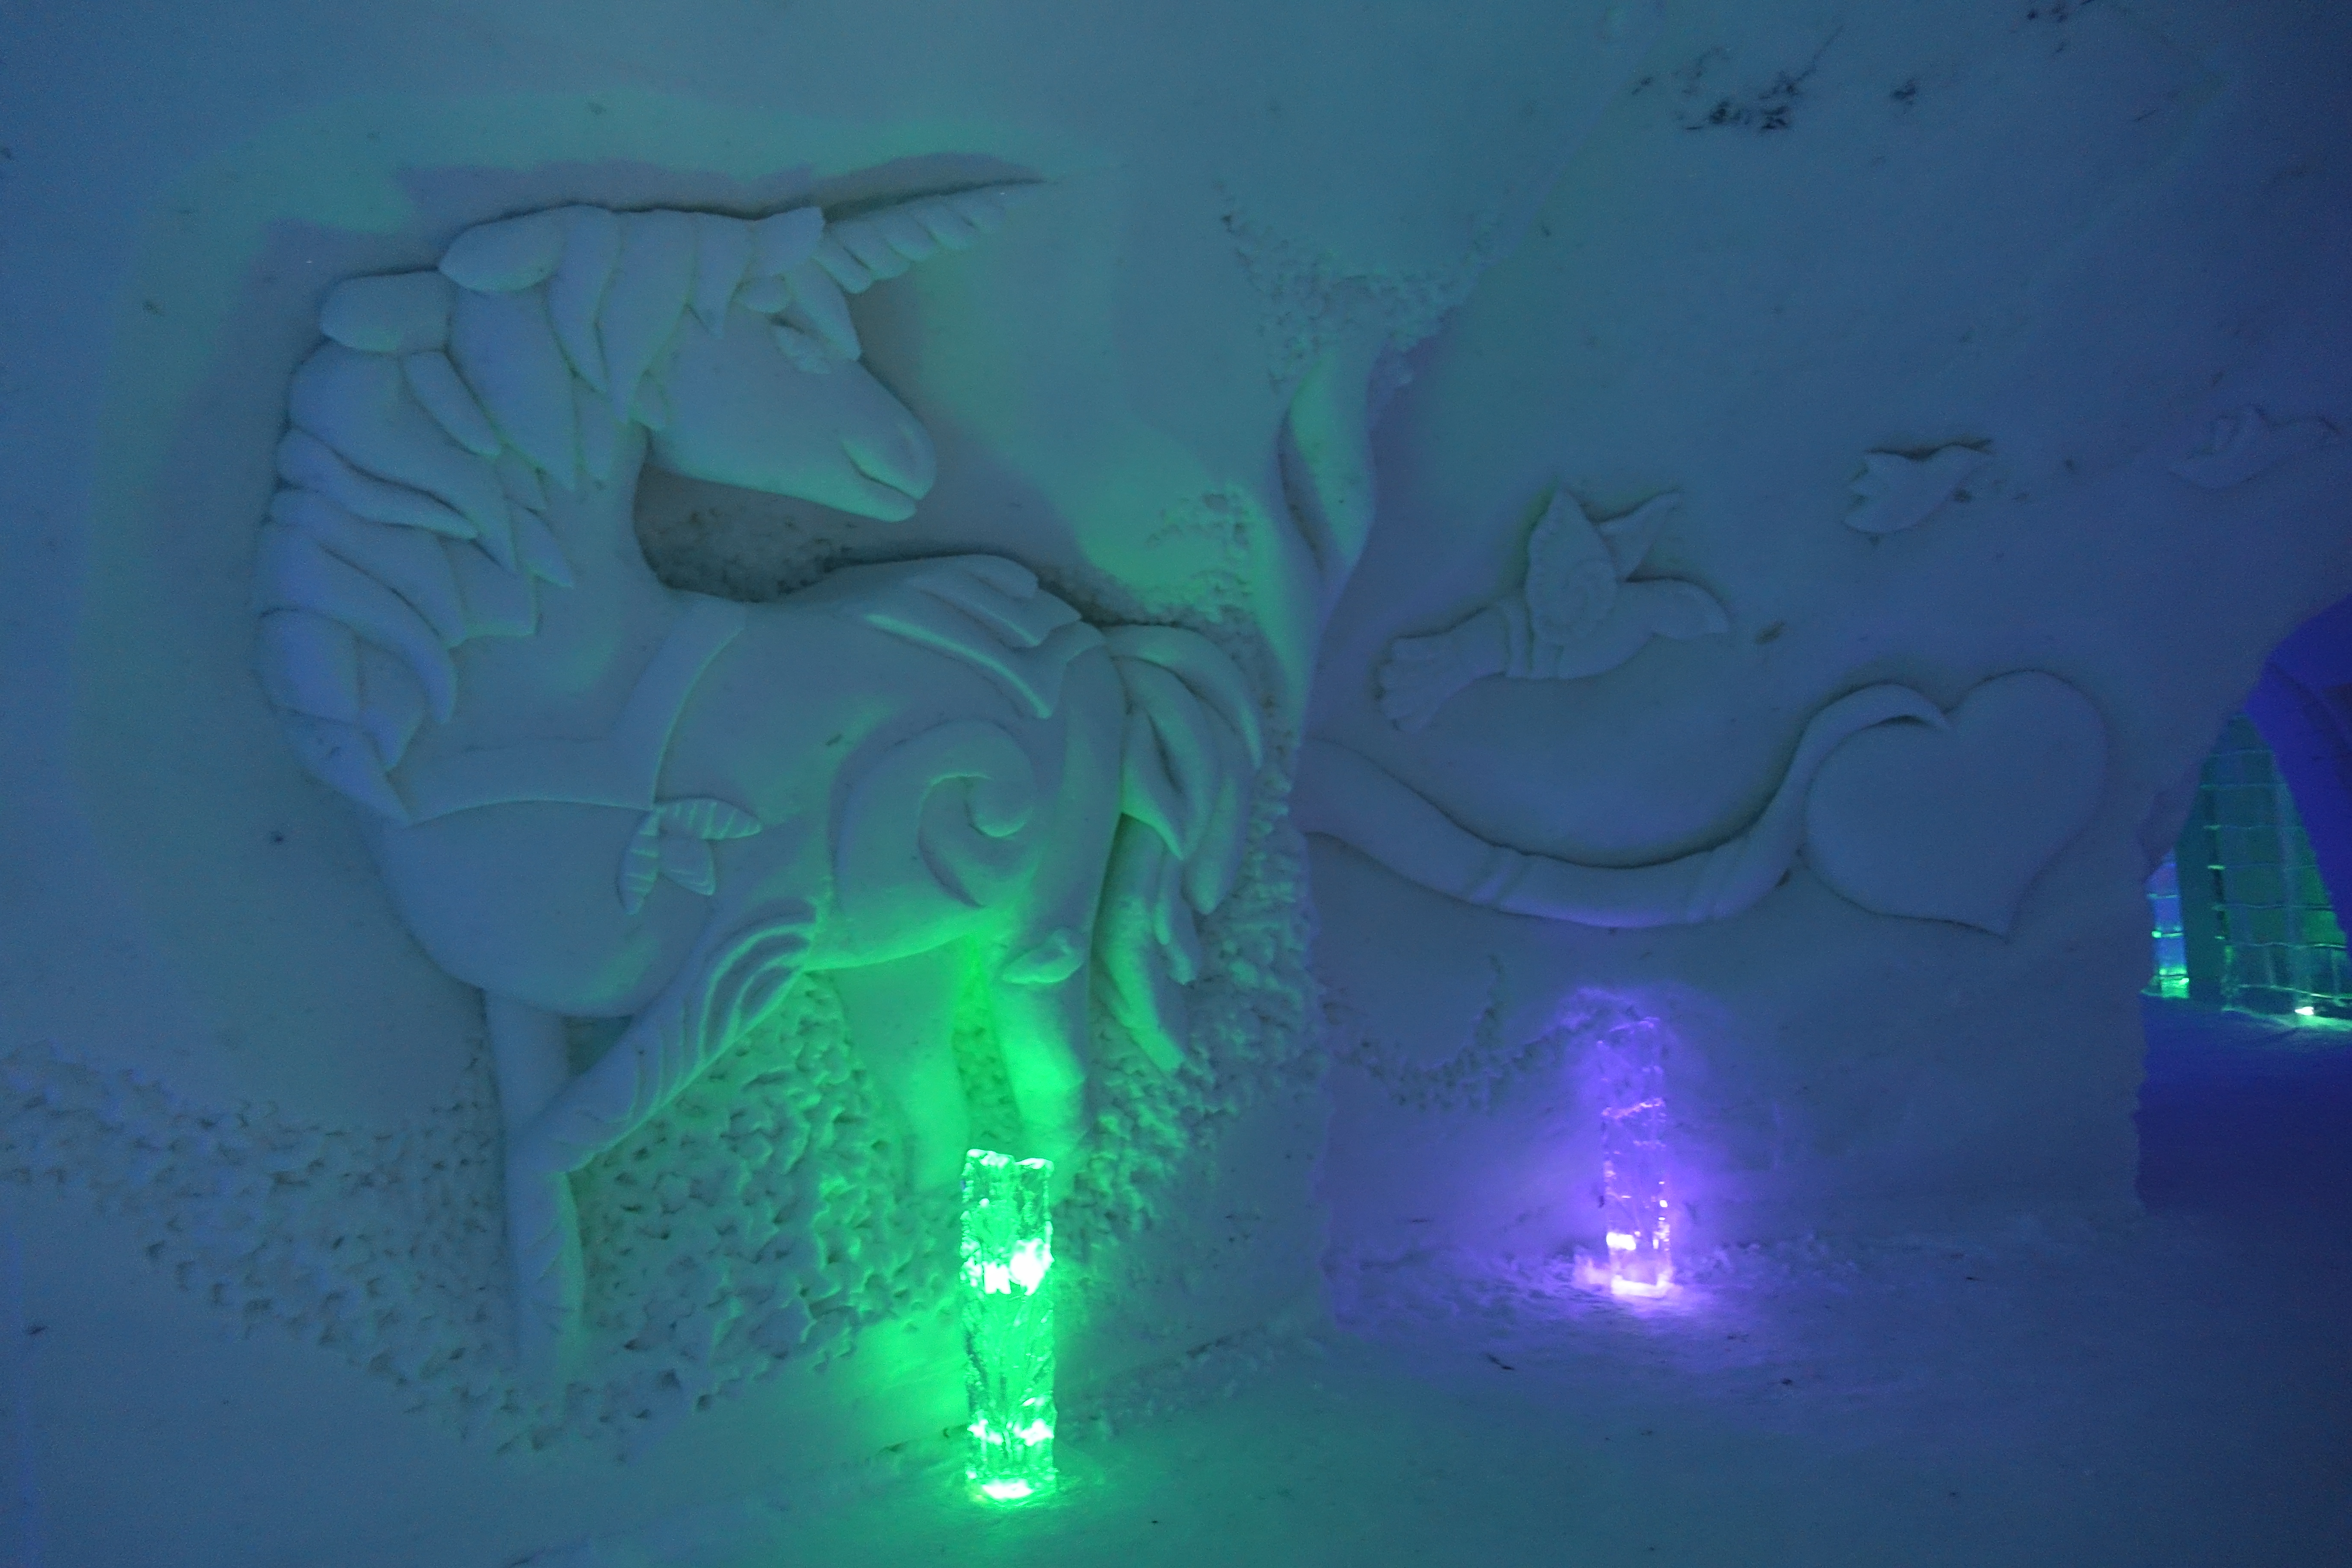 You will also be greeted by this carved unicorn.